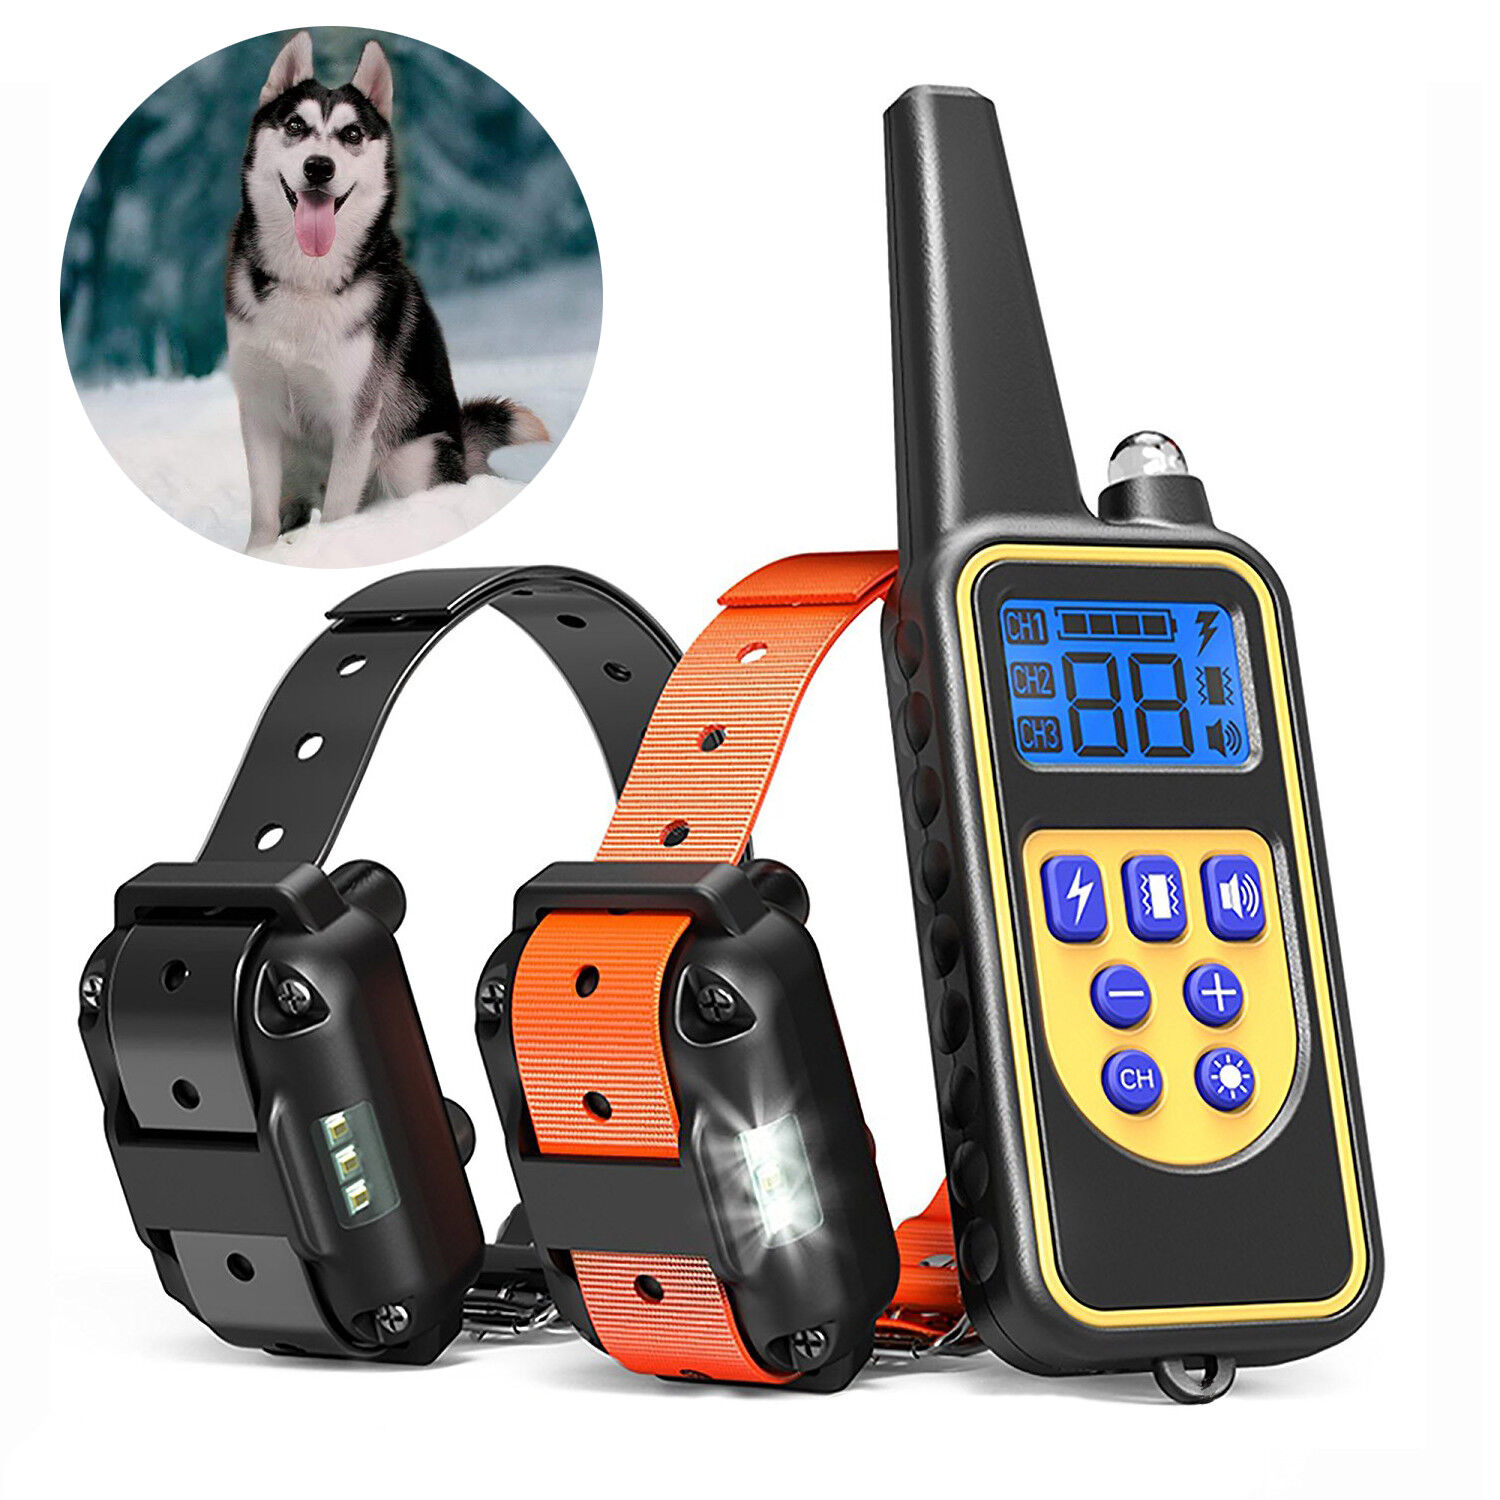 Waterproof Dog Training Electric Collar Rechargeable Remote Control 875 Yards